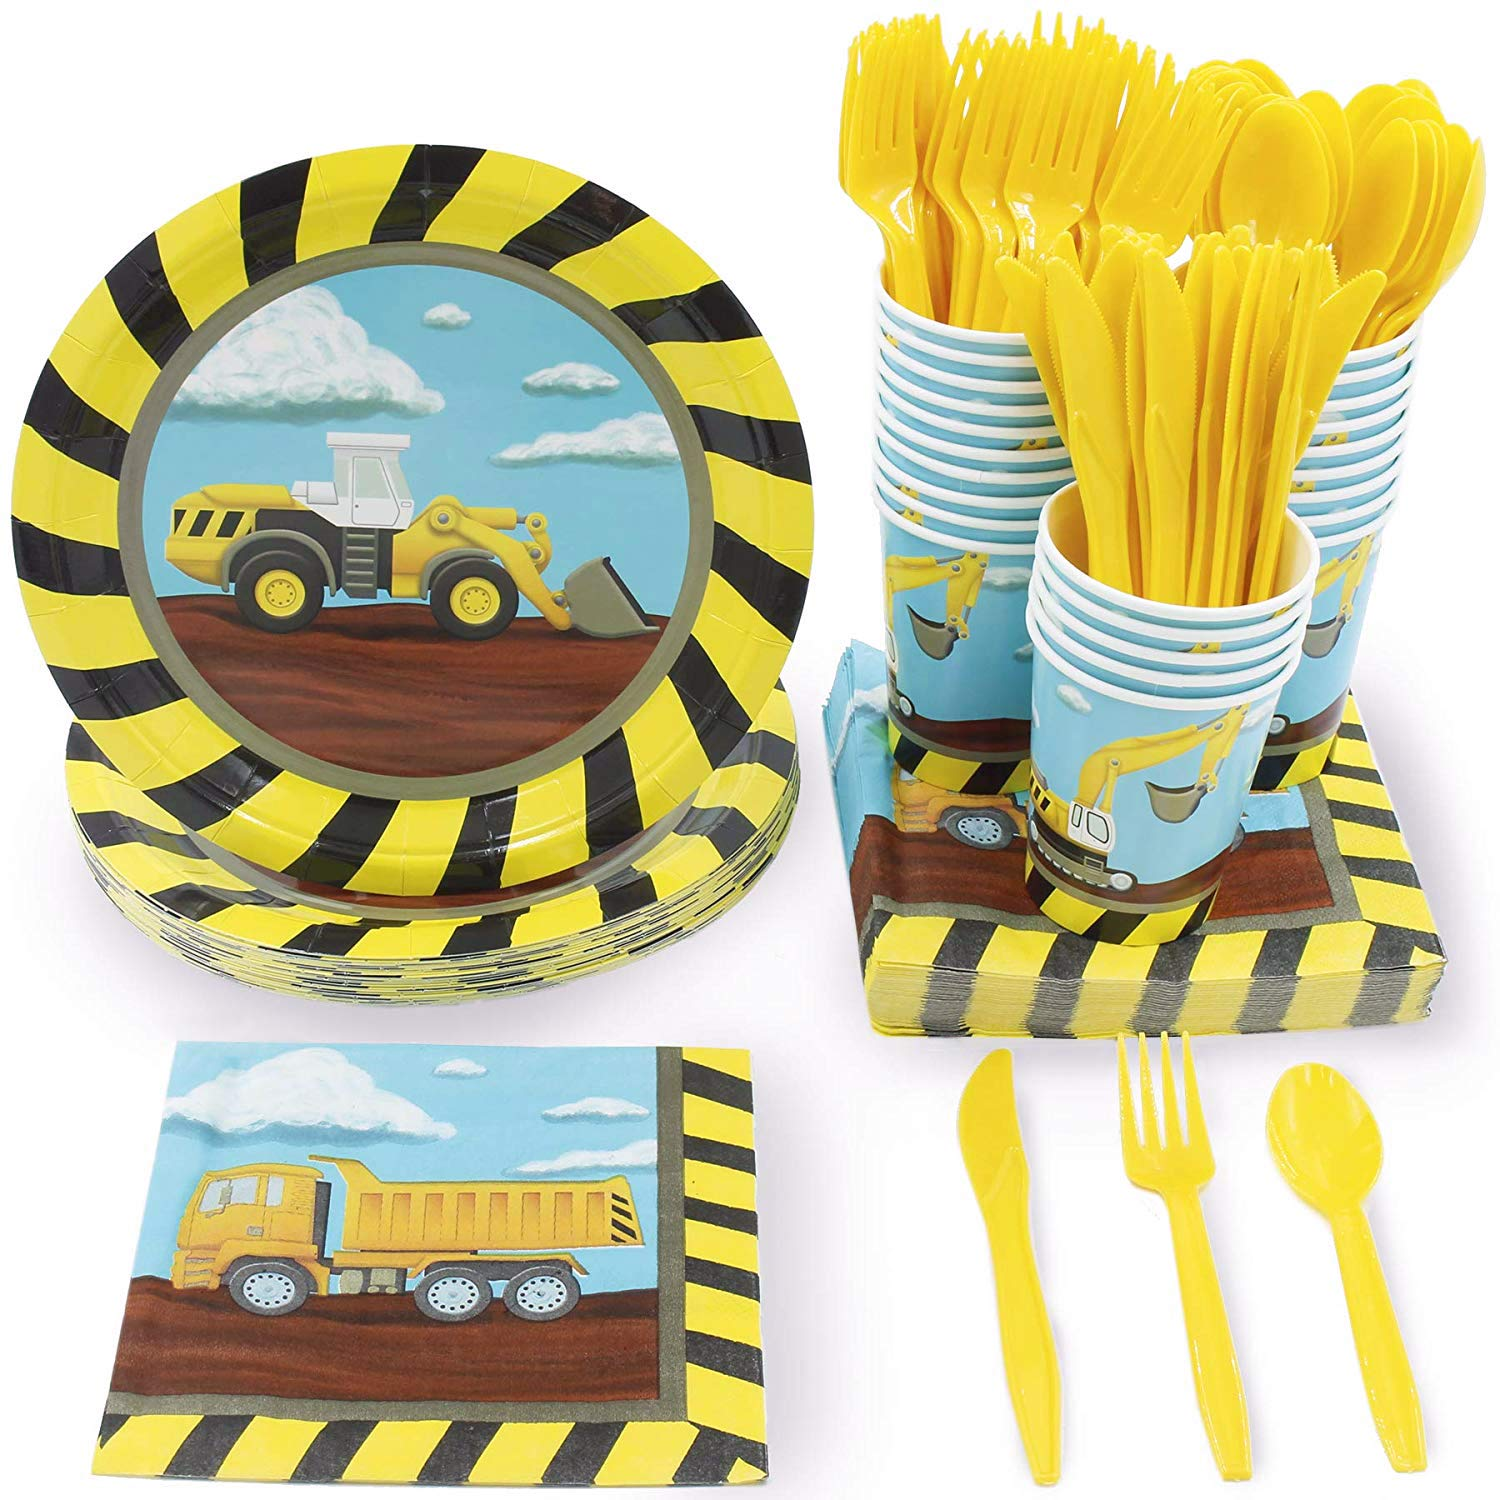 Juvale Kids Construction Birthday Party Supplies - Serves 24 - Includes Plates, Knives, Spoons, Forks, Cups and Napkins by Juvale